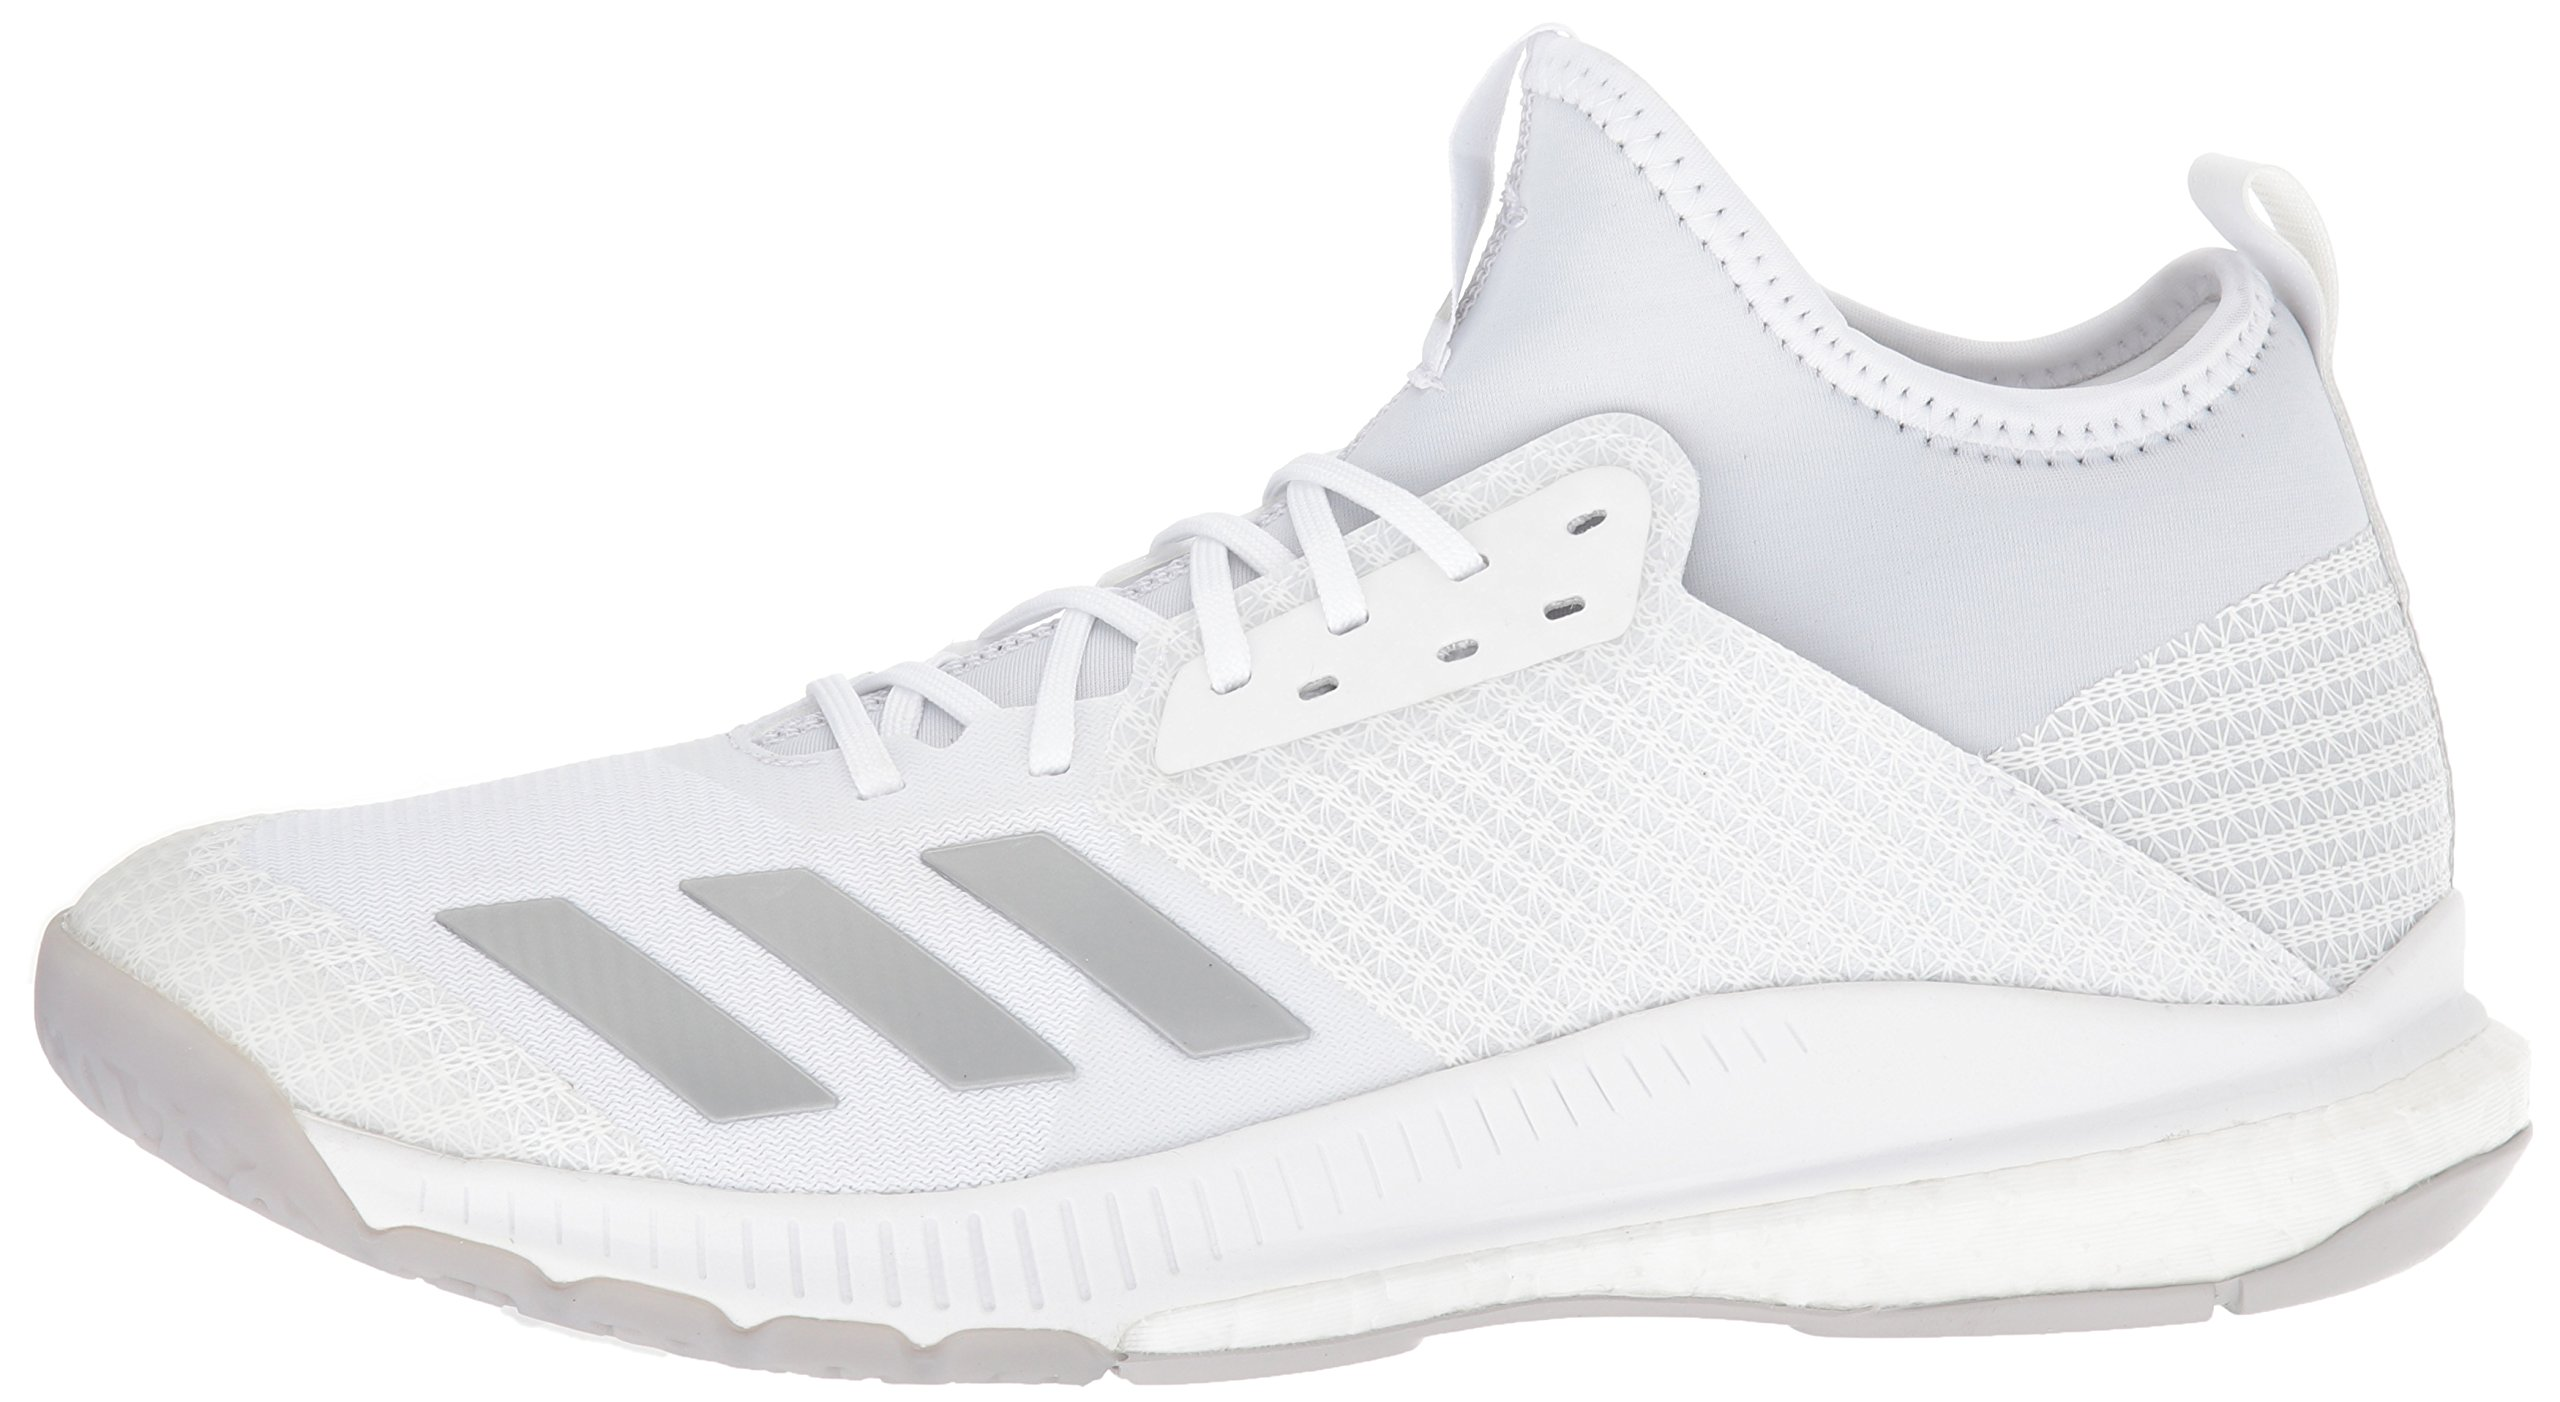 Details about adidas Women's Crazyflight X 2 Mid Volleyball Shoe Choose SZcolor